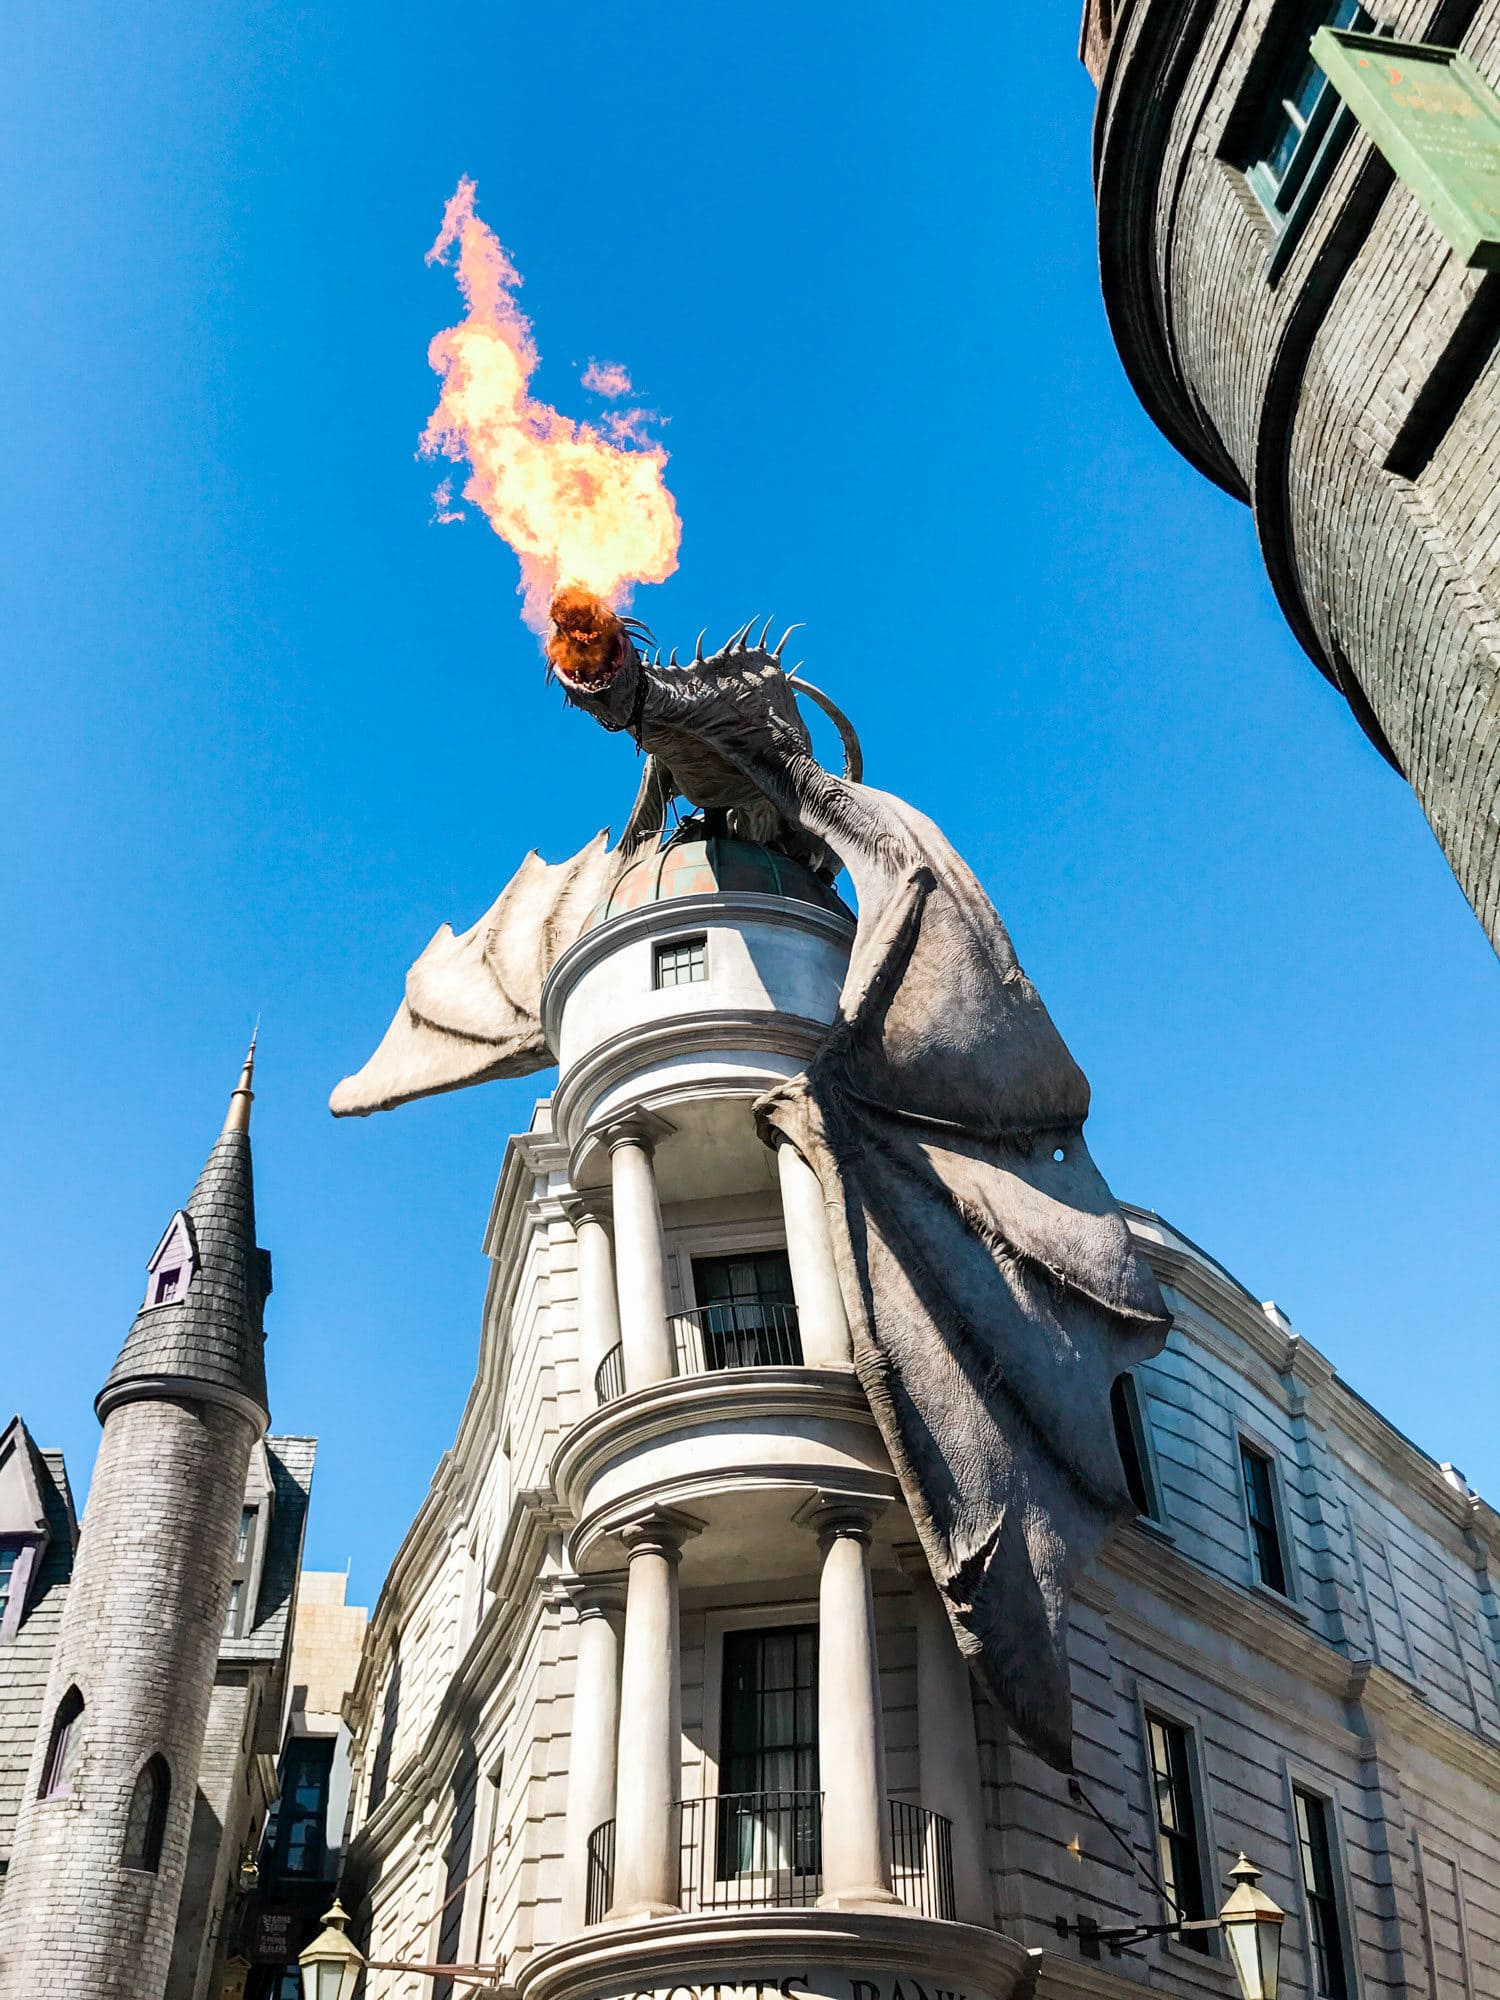 The Best Things to Do At The Wizarding World of Harry Potter